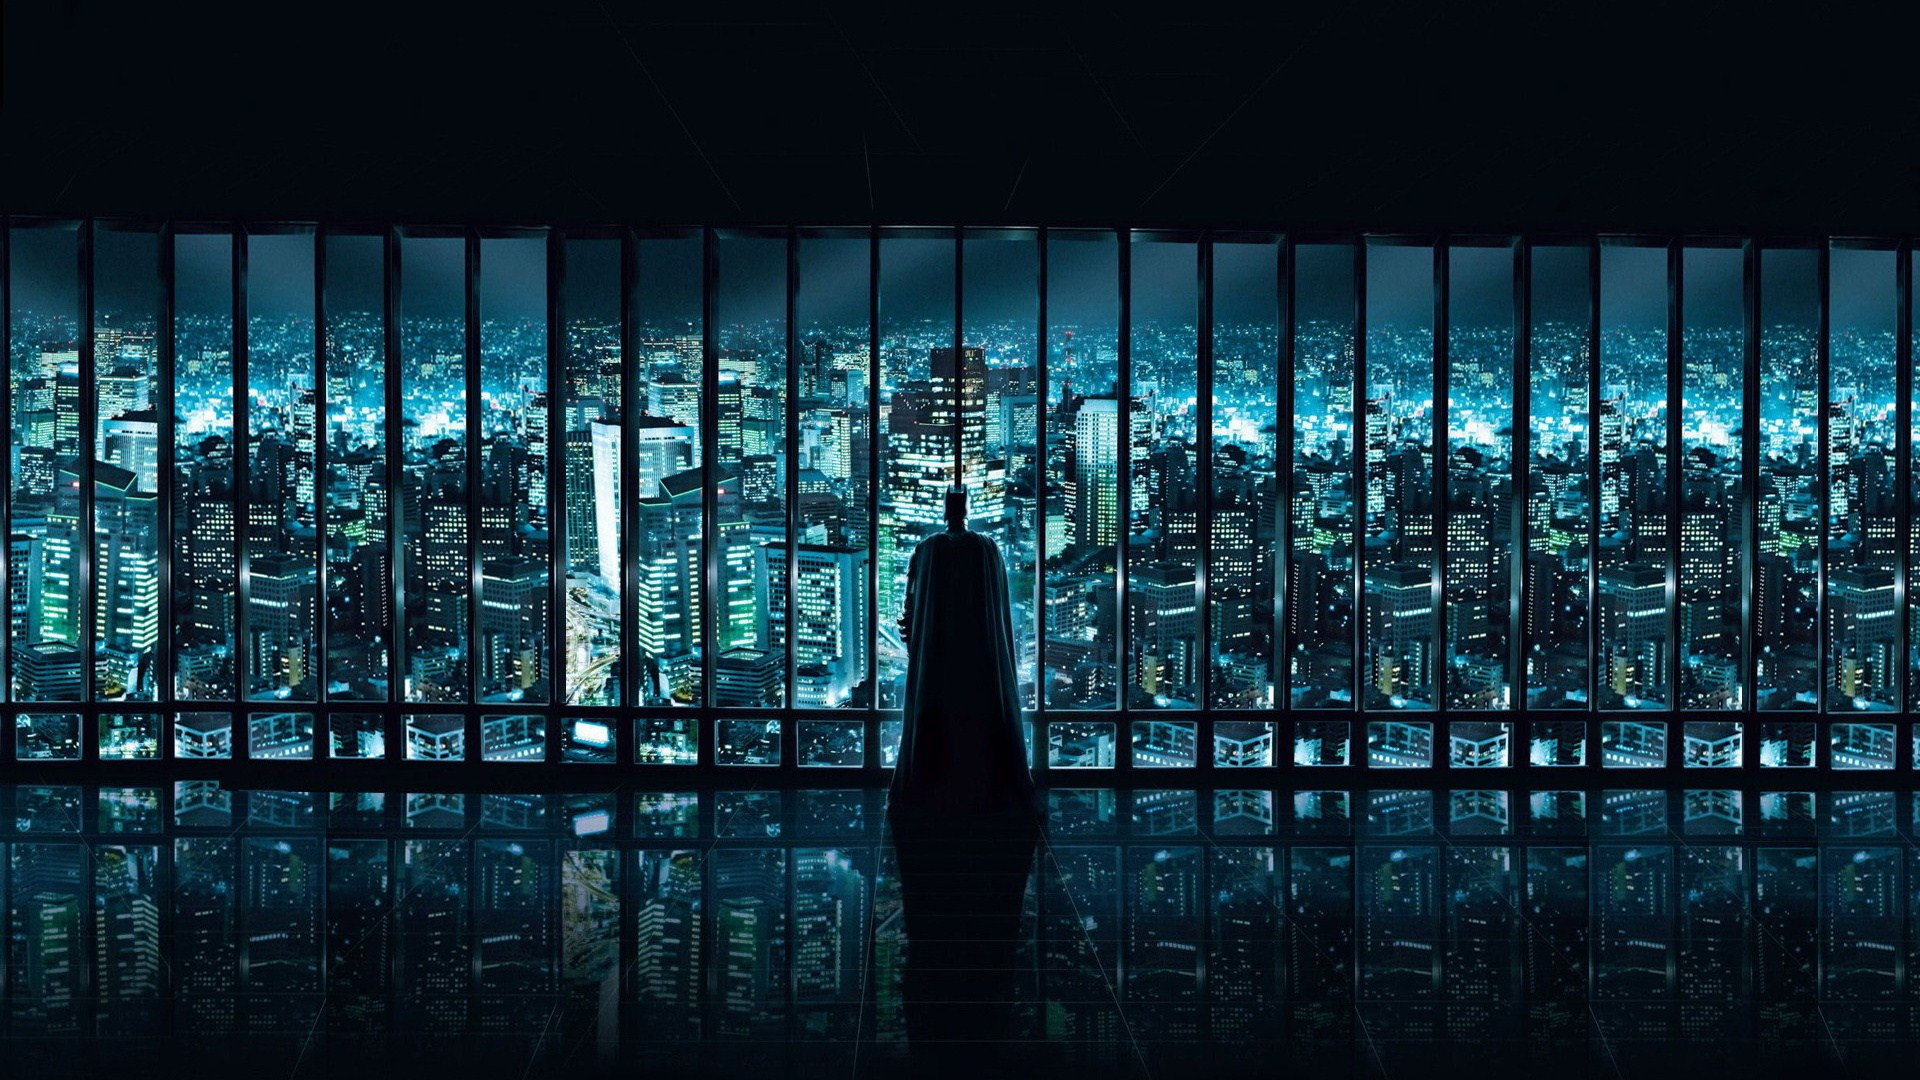 batman the dark knight returns top 10 hd batman movie desktop wallpapers